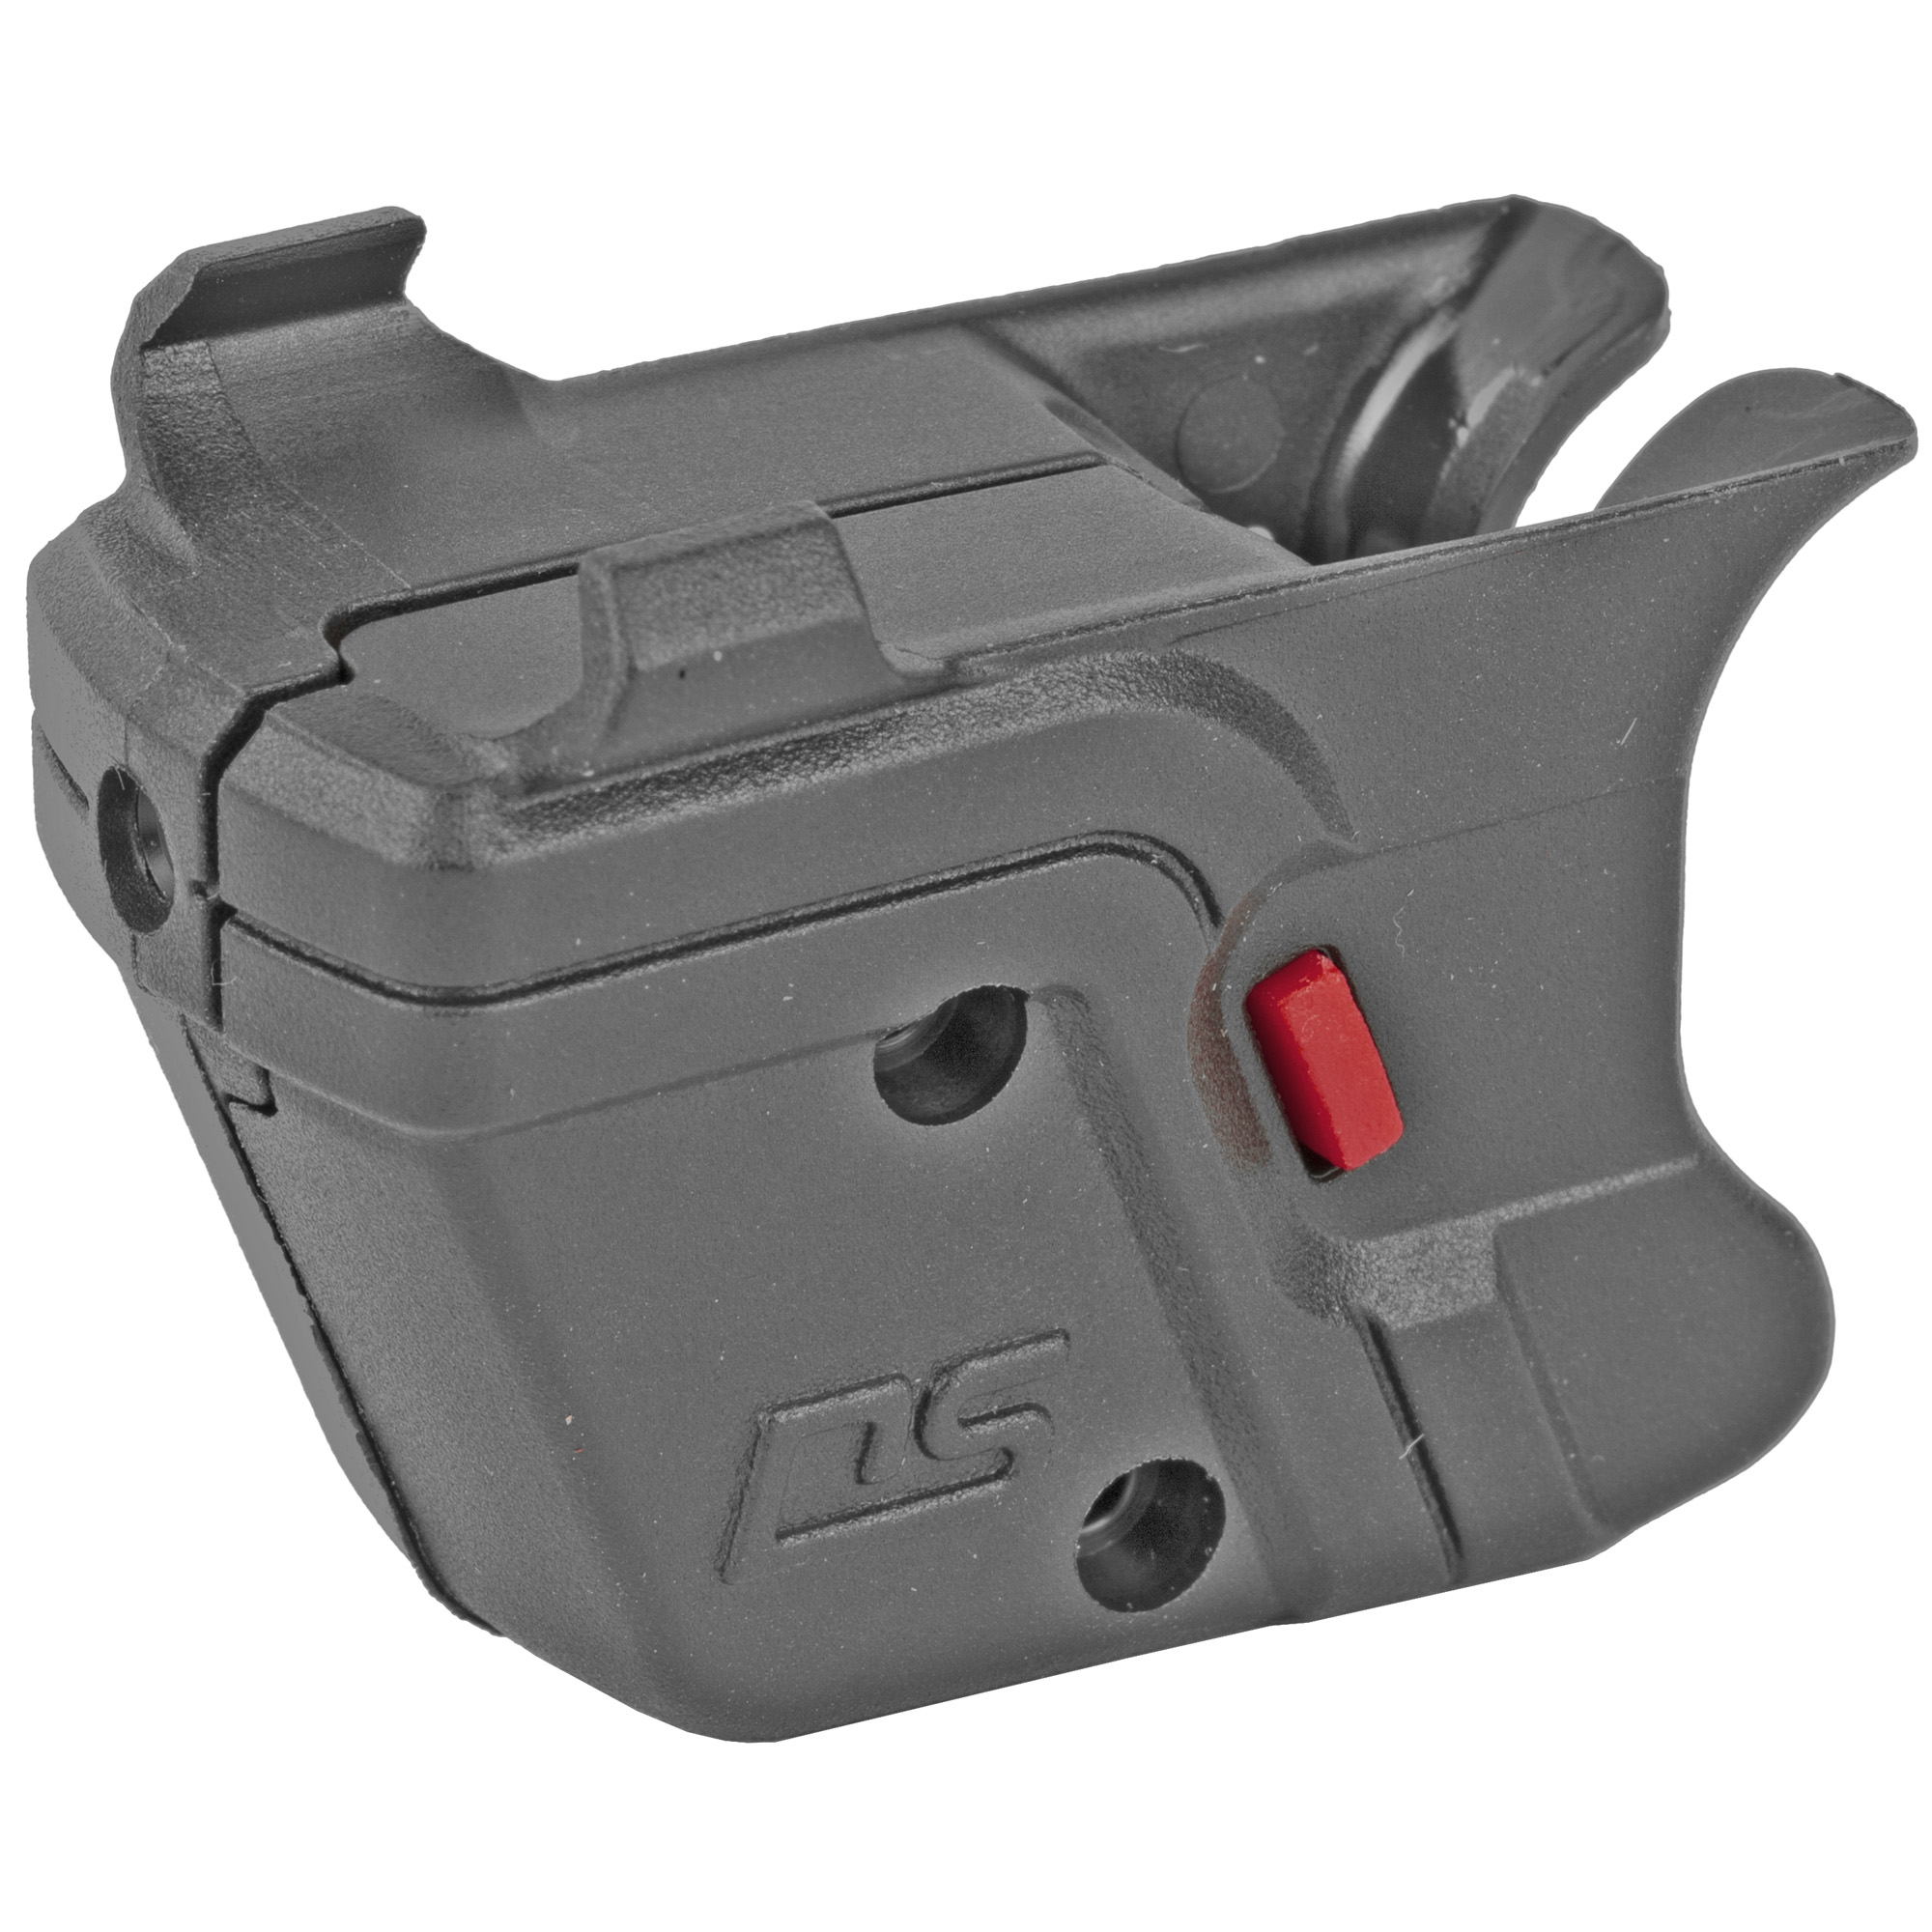 """The DS-121 Defender Series(TM) Accu-Guard(TM) Laser Sight by Crimson Trace fits GLOCK Full-Size and Compact pistols. The Defender Series sets a new standard in laser sight for GLOCK pistols by providing cutting edge design"""" superior technology"""" and an affordable price tag. The DS-121 features Beam Lock(TM) Adjustments so that the user can easily adjust laser sighting for both windage and elevation"""" and the unit is pre-sighted at the factory at 50 ft. The Dual Side N-Gage(TM) Activation Buttons provide a large"""" easy-to-find"""" bright red activation button"""" which emits a powerful (5mW peak"""" 620-670nm"""" Class 3R) red aiming laser."""